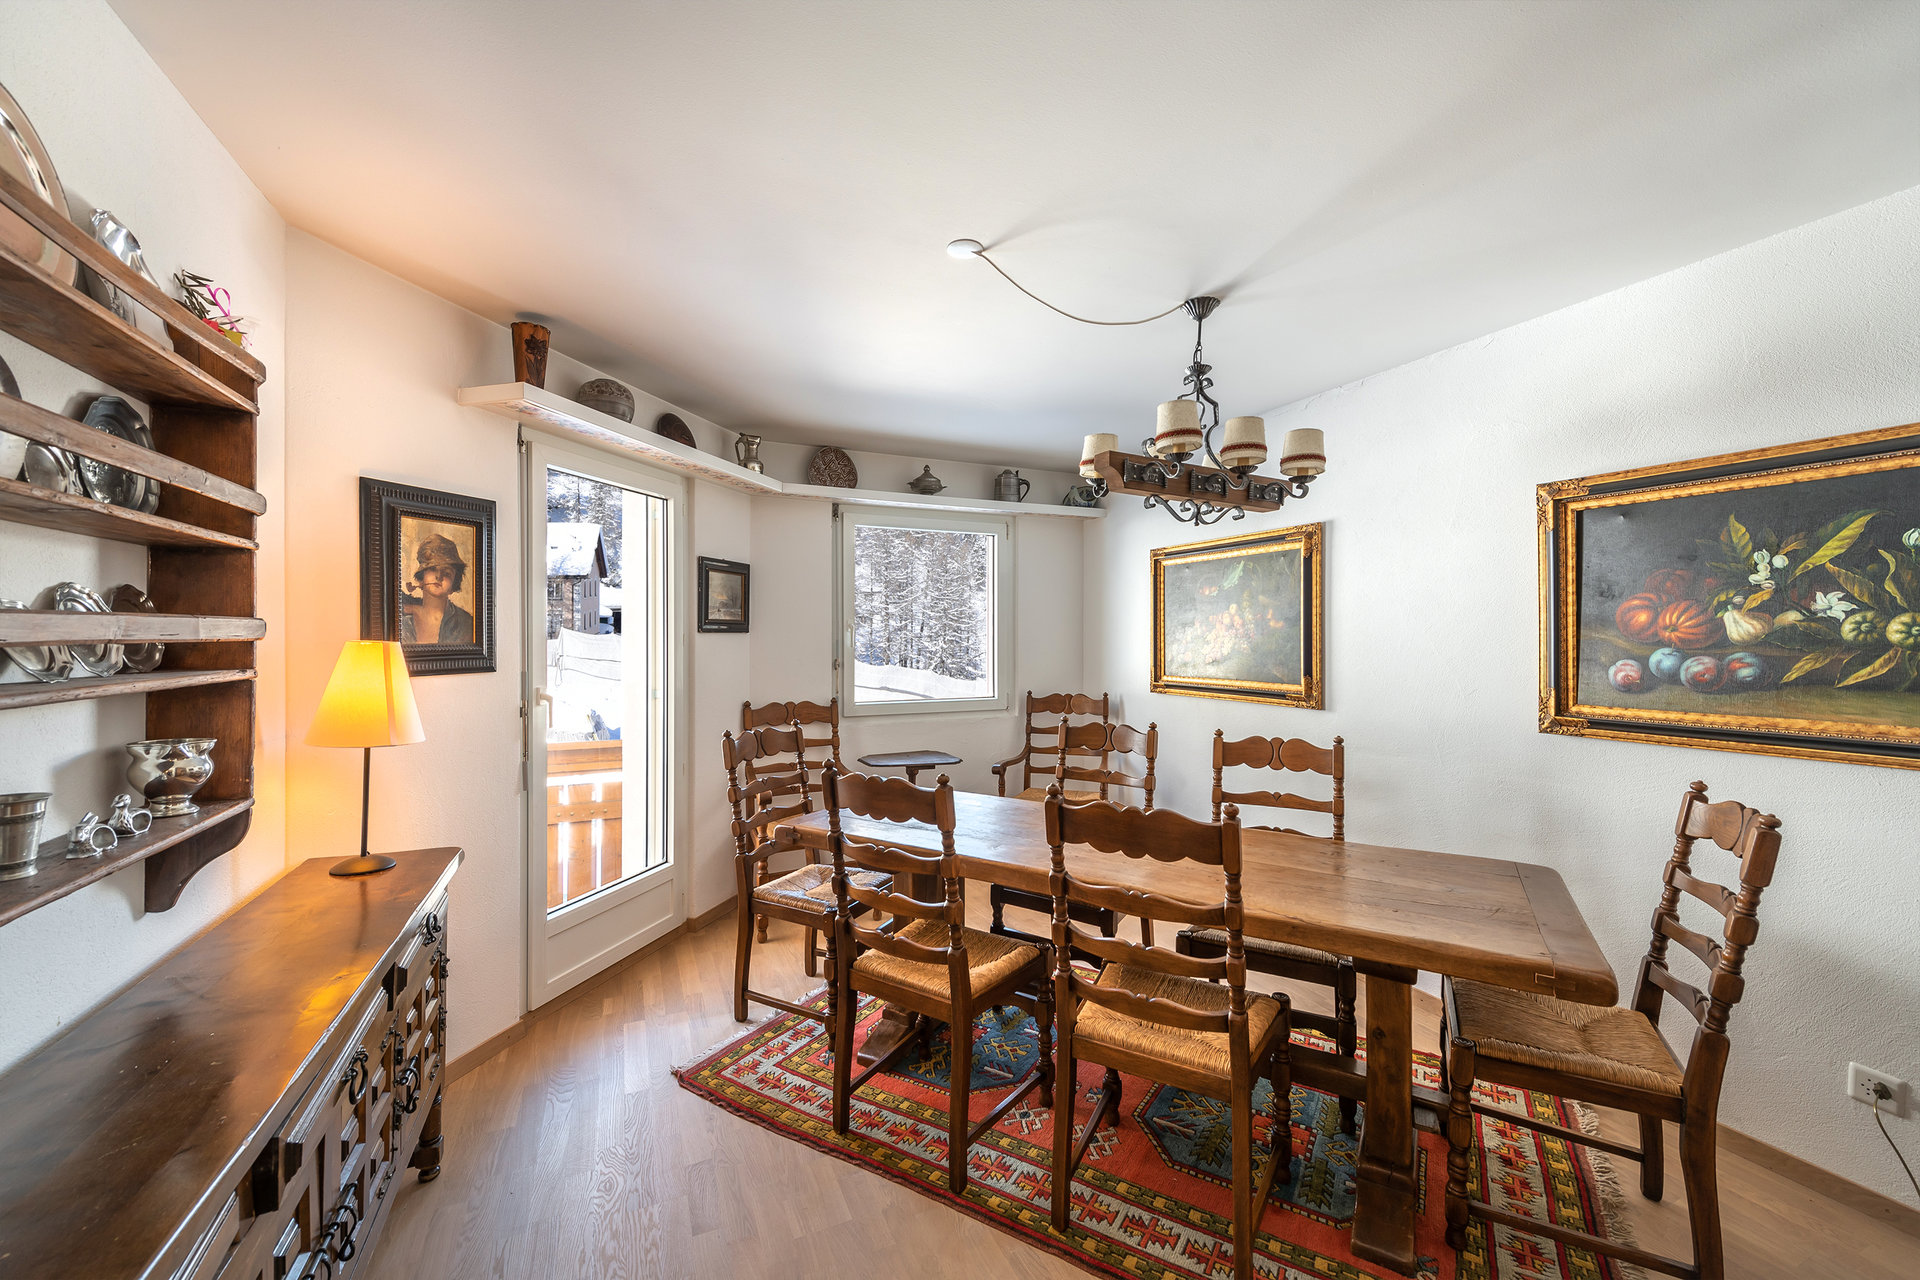 Large apartment for sale in Sankt Moritz, Switzerland- dining room